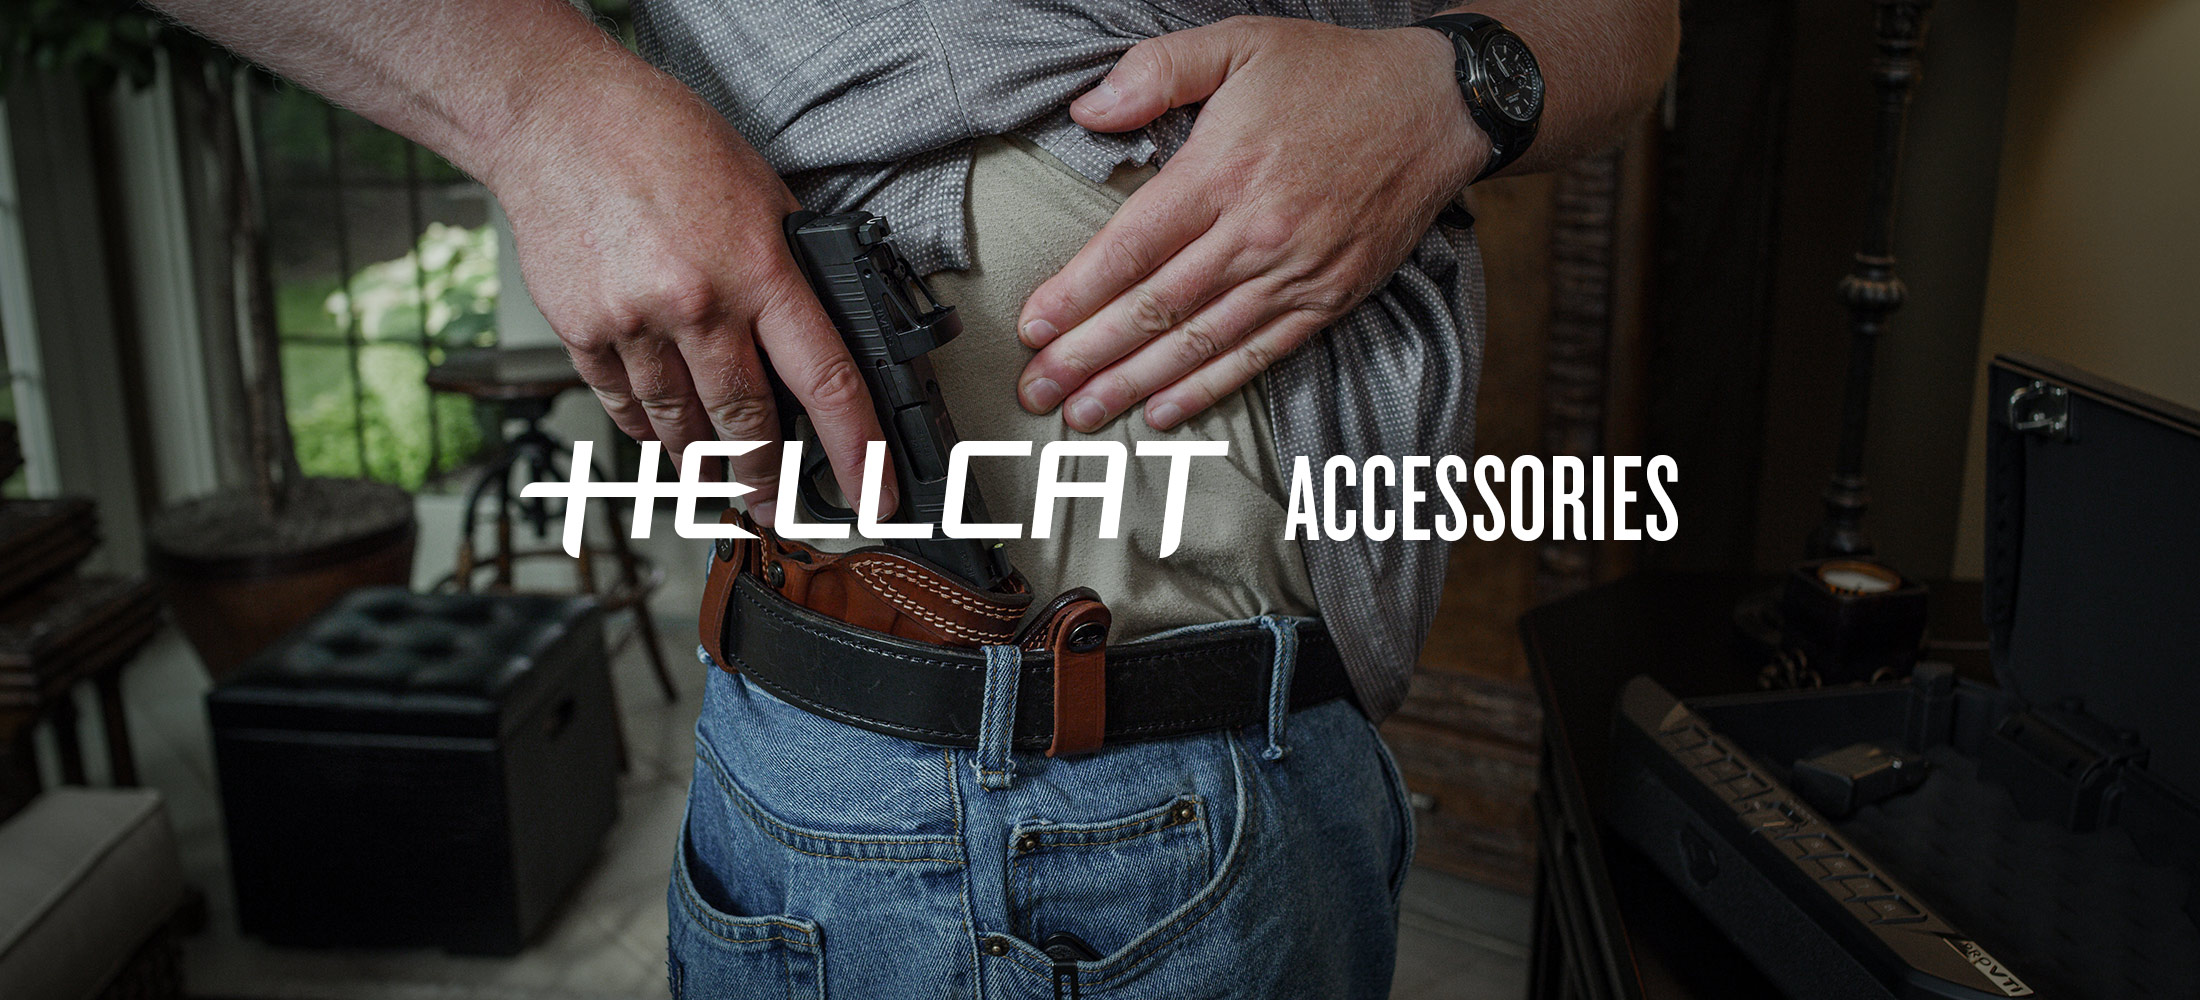 Hellcat Accessories Springfield Armory Web Store